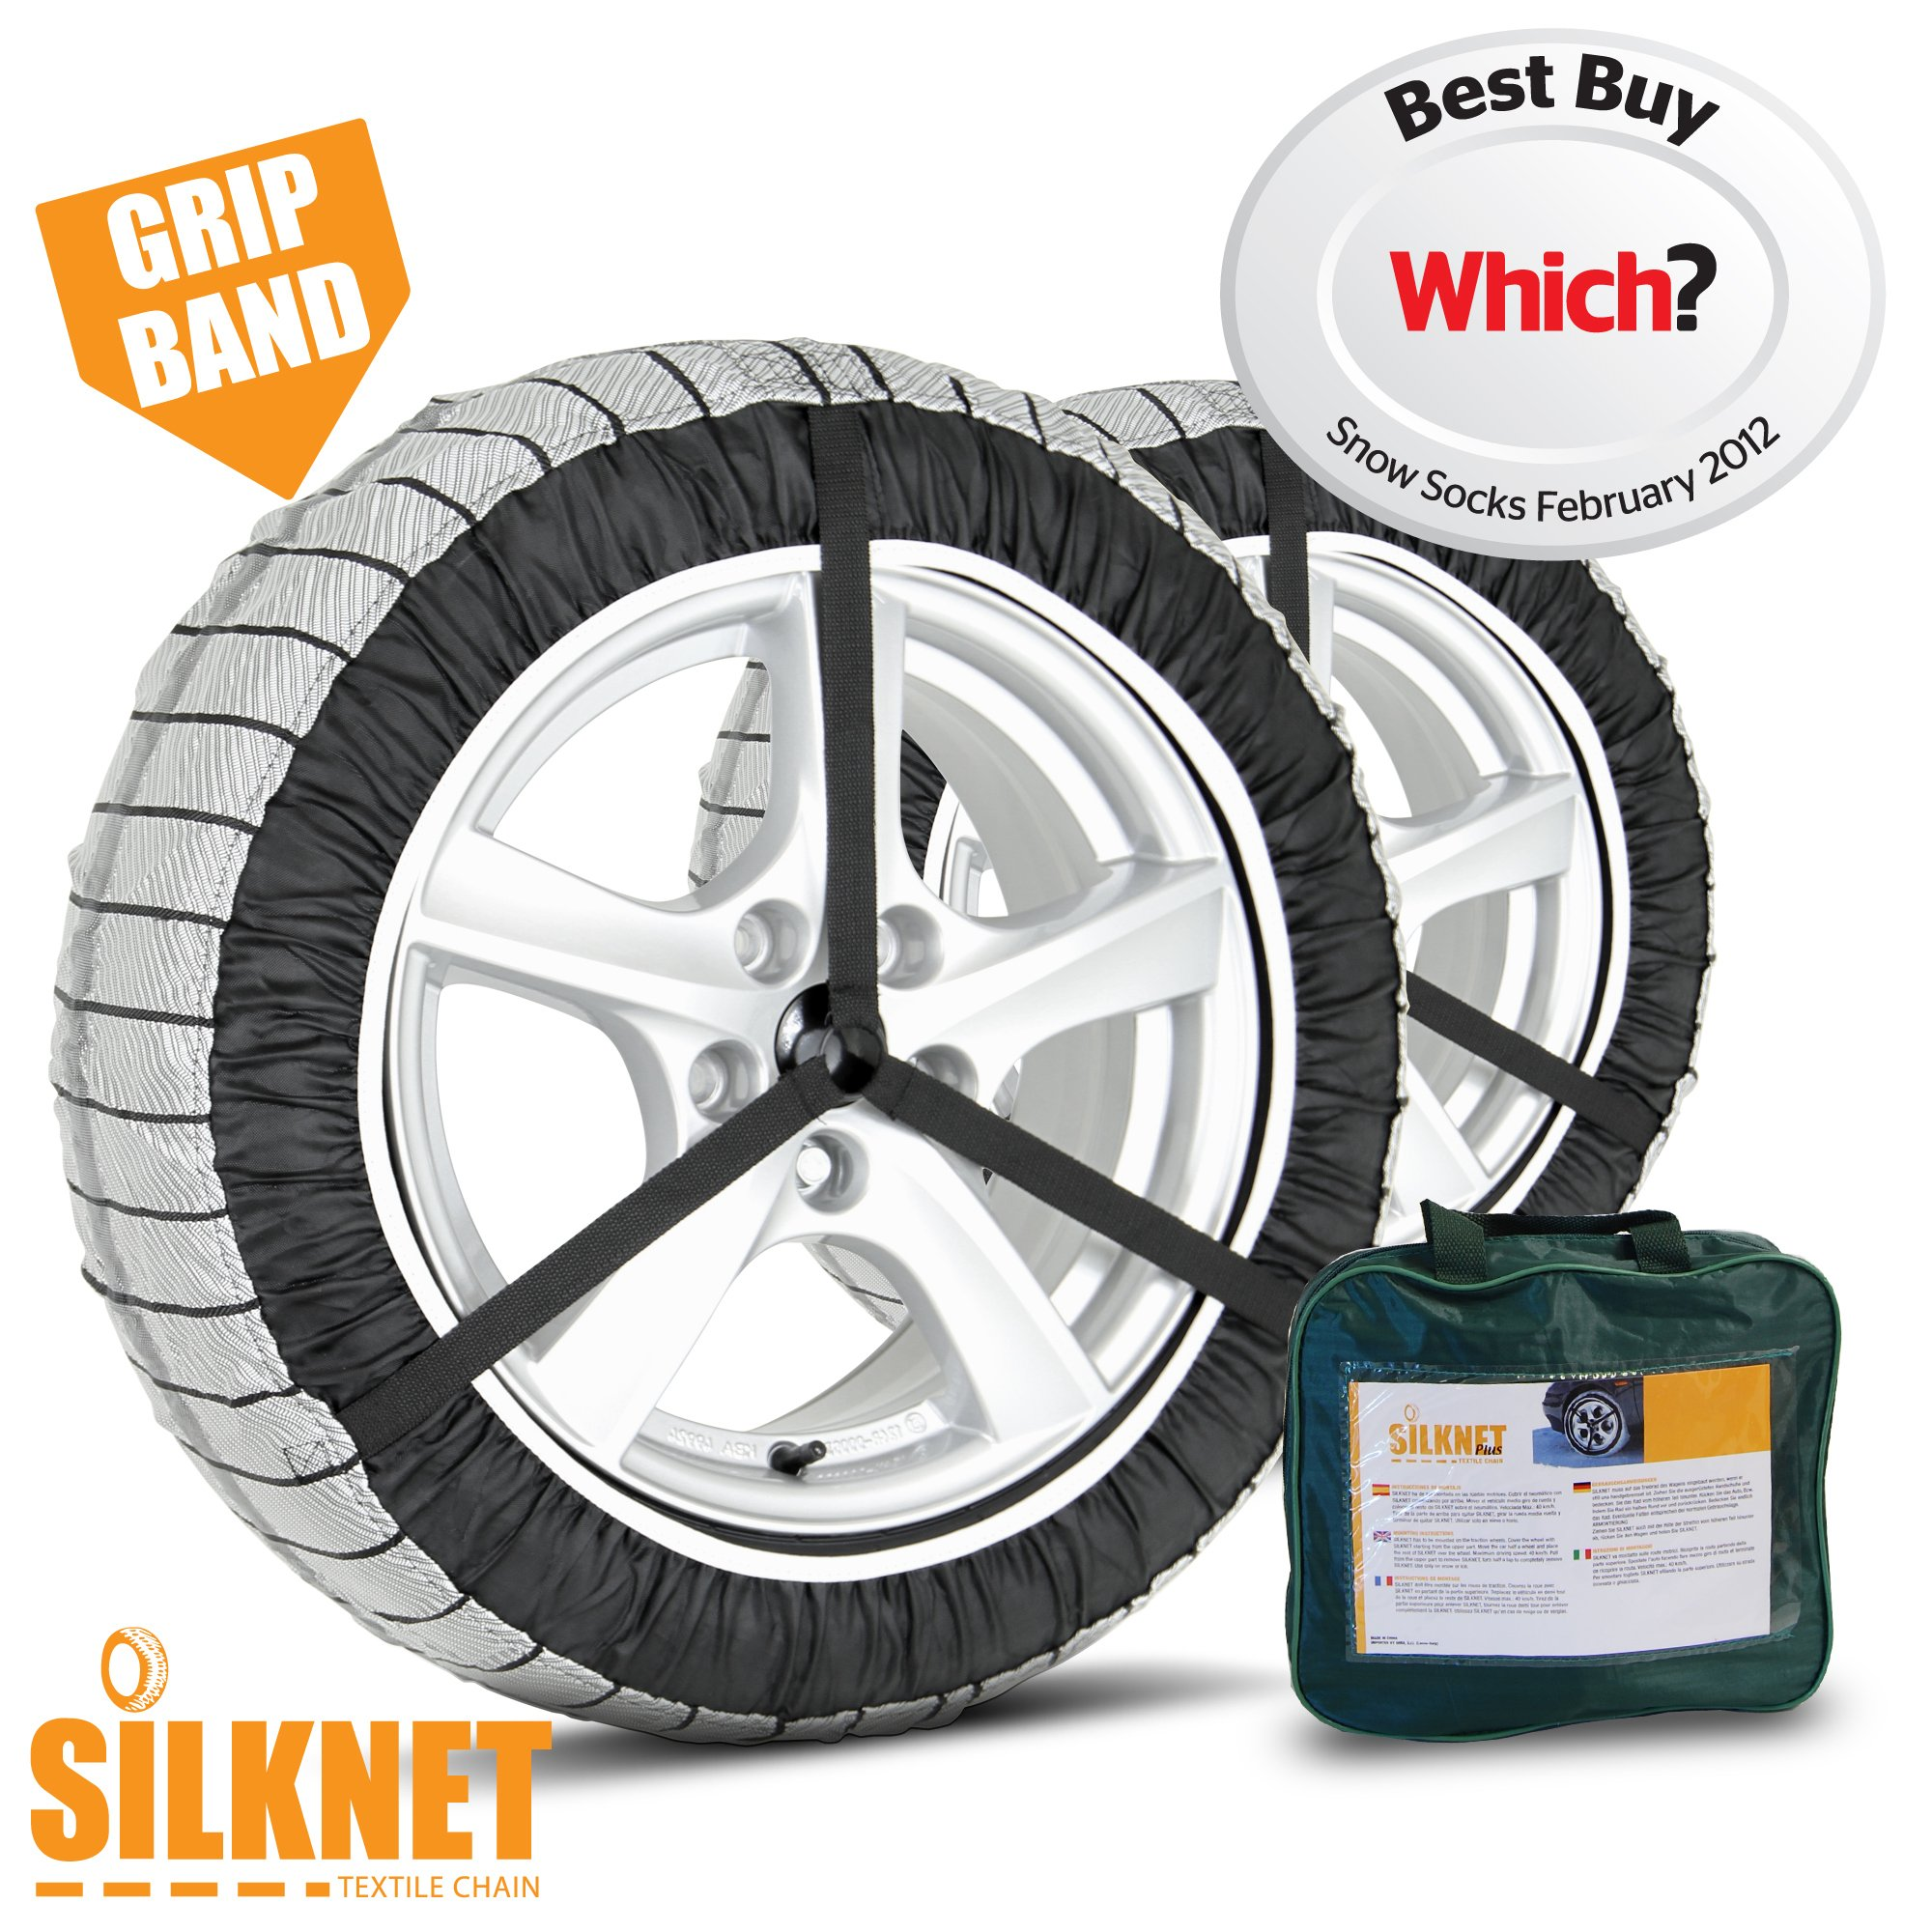 Silknet Snow Socks - Size 80 - Awarded 'Which Best Buy' - Universal To Fit 265/35 R19, 245/35 R20, 245/35 R21 and More